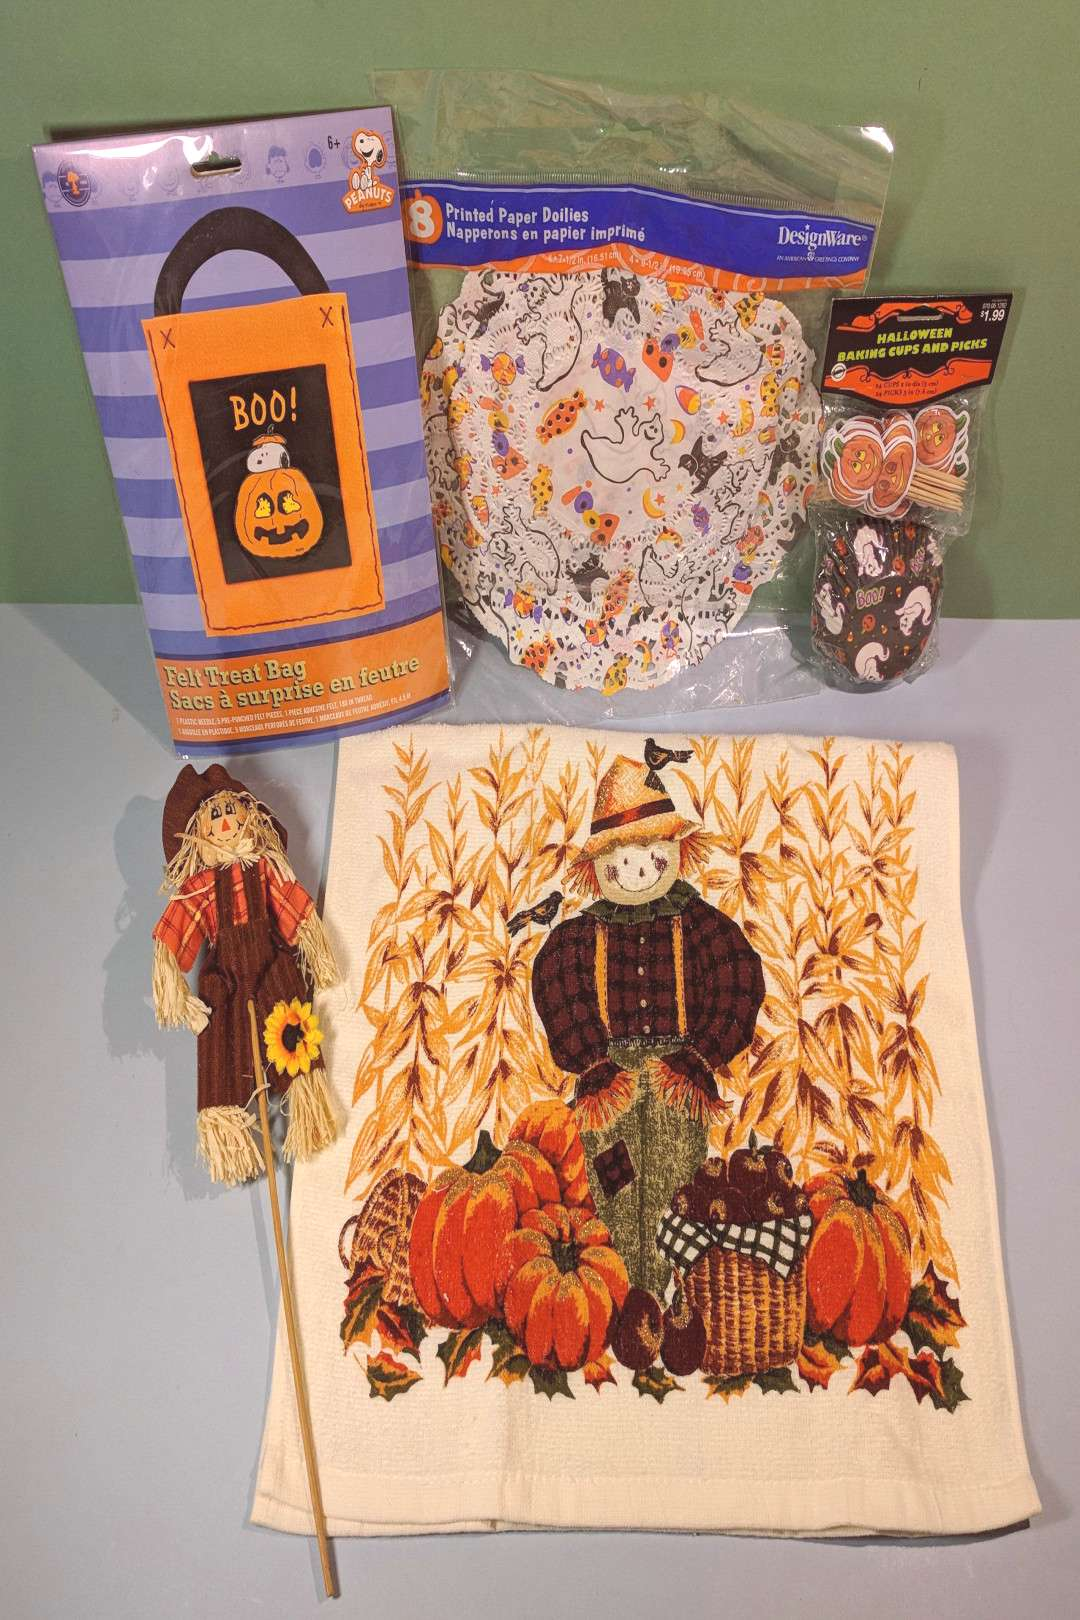 5 Pc Halloween Kids Party Variety Pack, Cup Cake Liners, Scarecrow Pick, Peanuts Snoopy Felt Treat